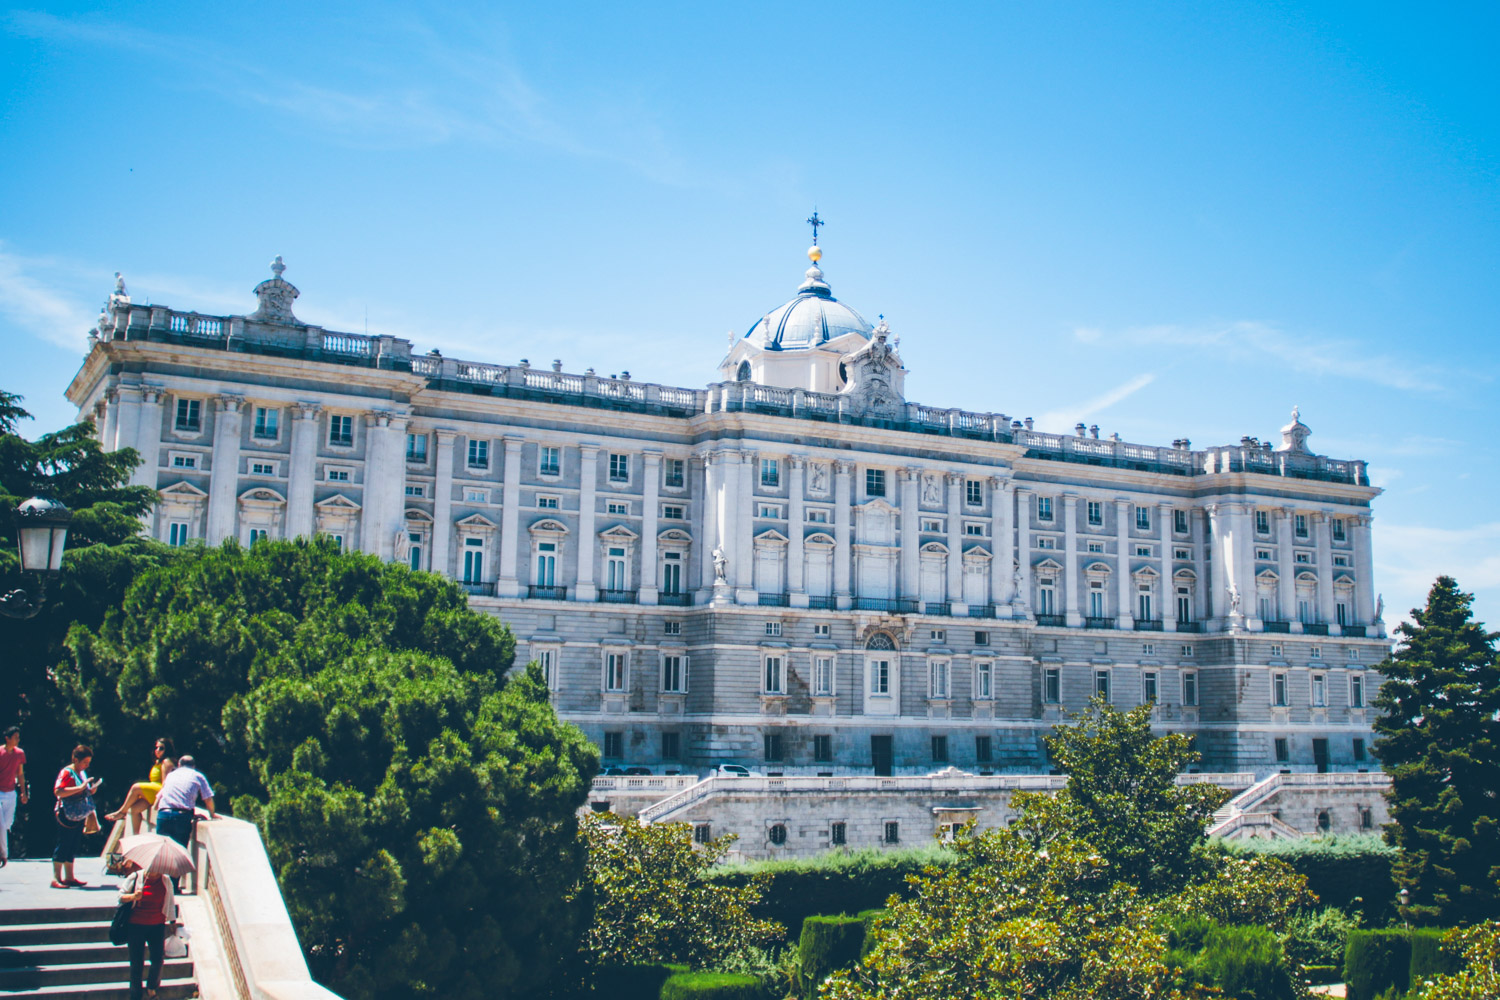 See the inside of Europes largest palace, the magnificent Palacio Real.